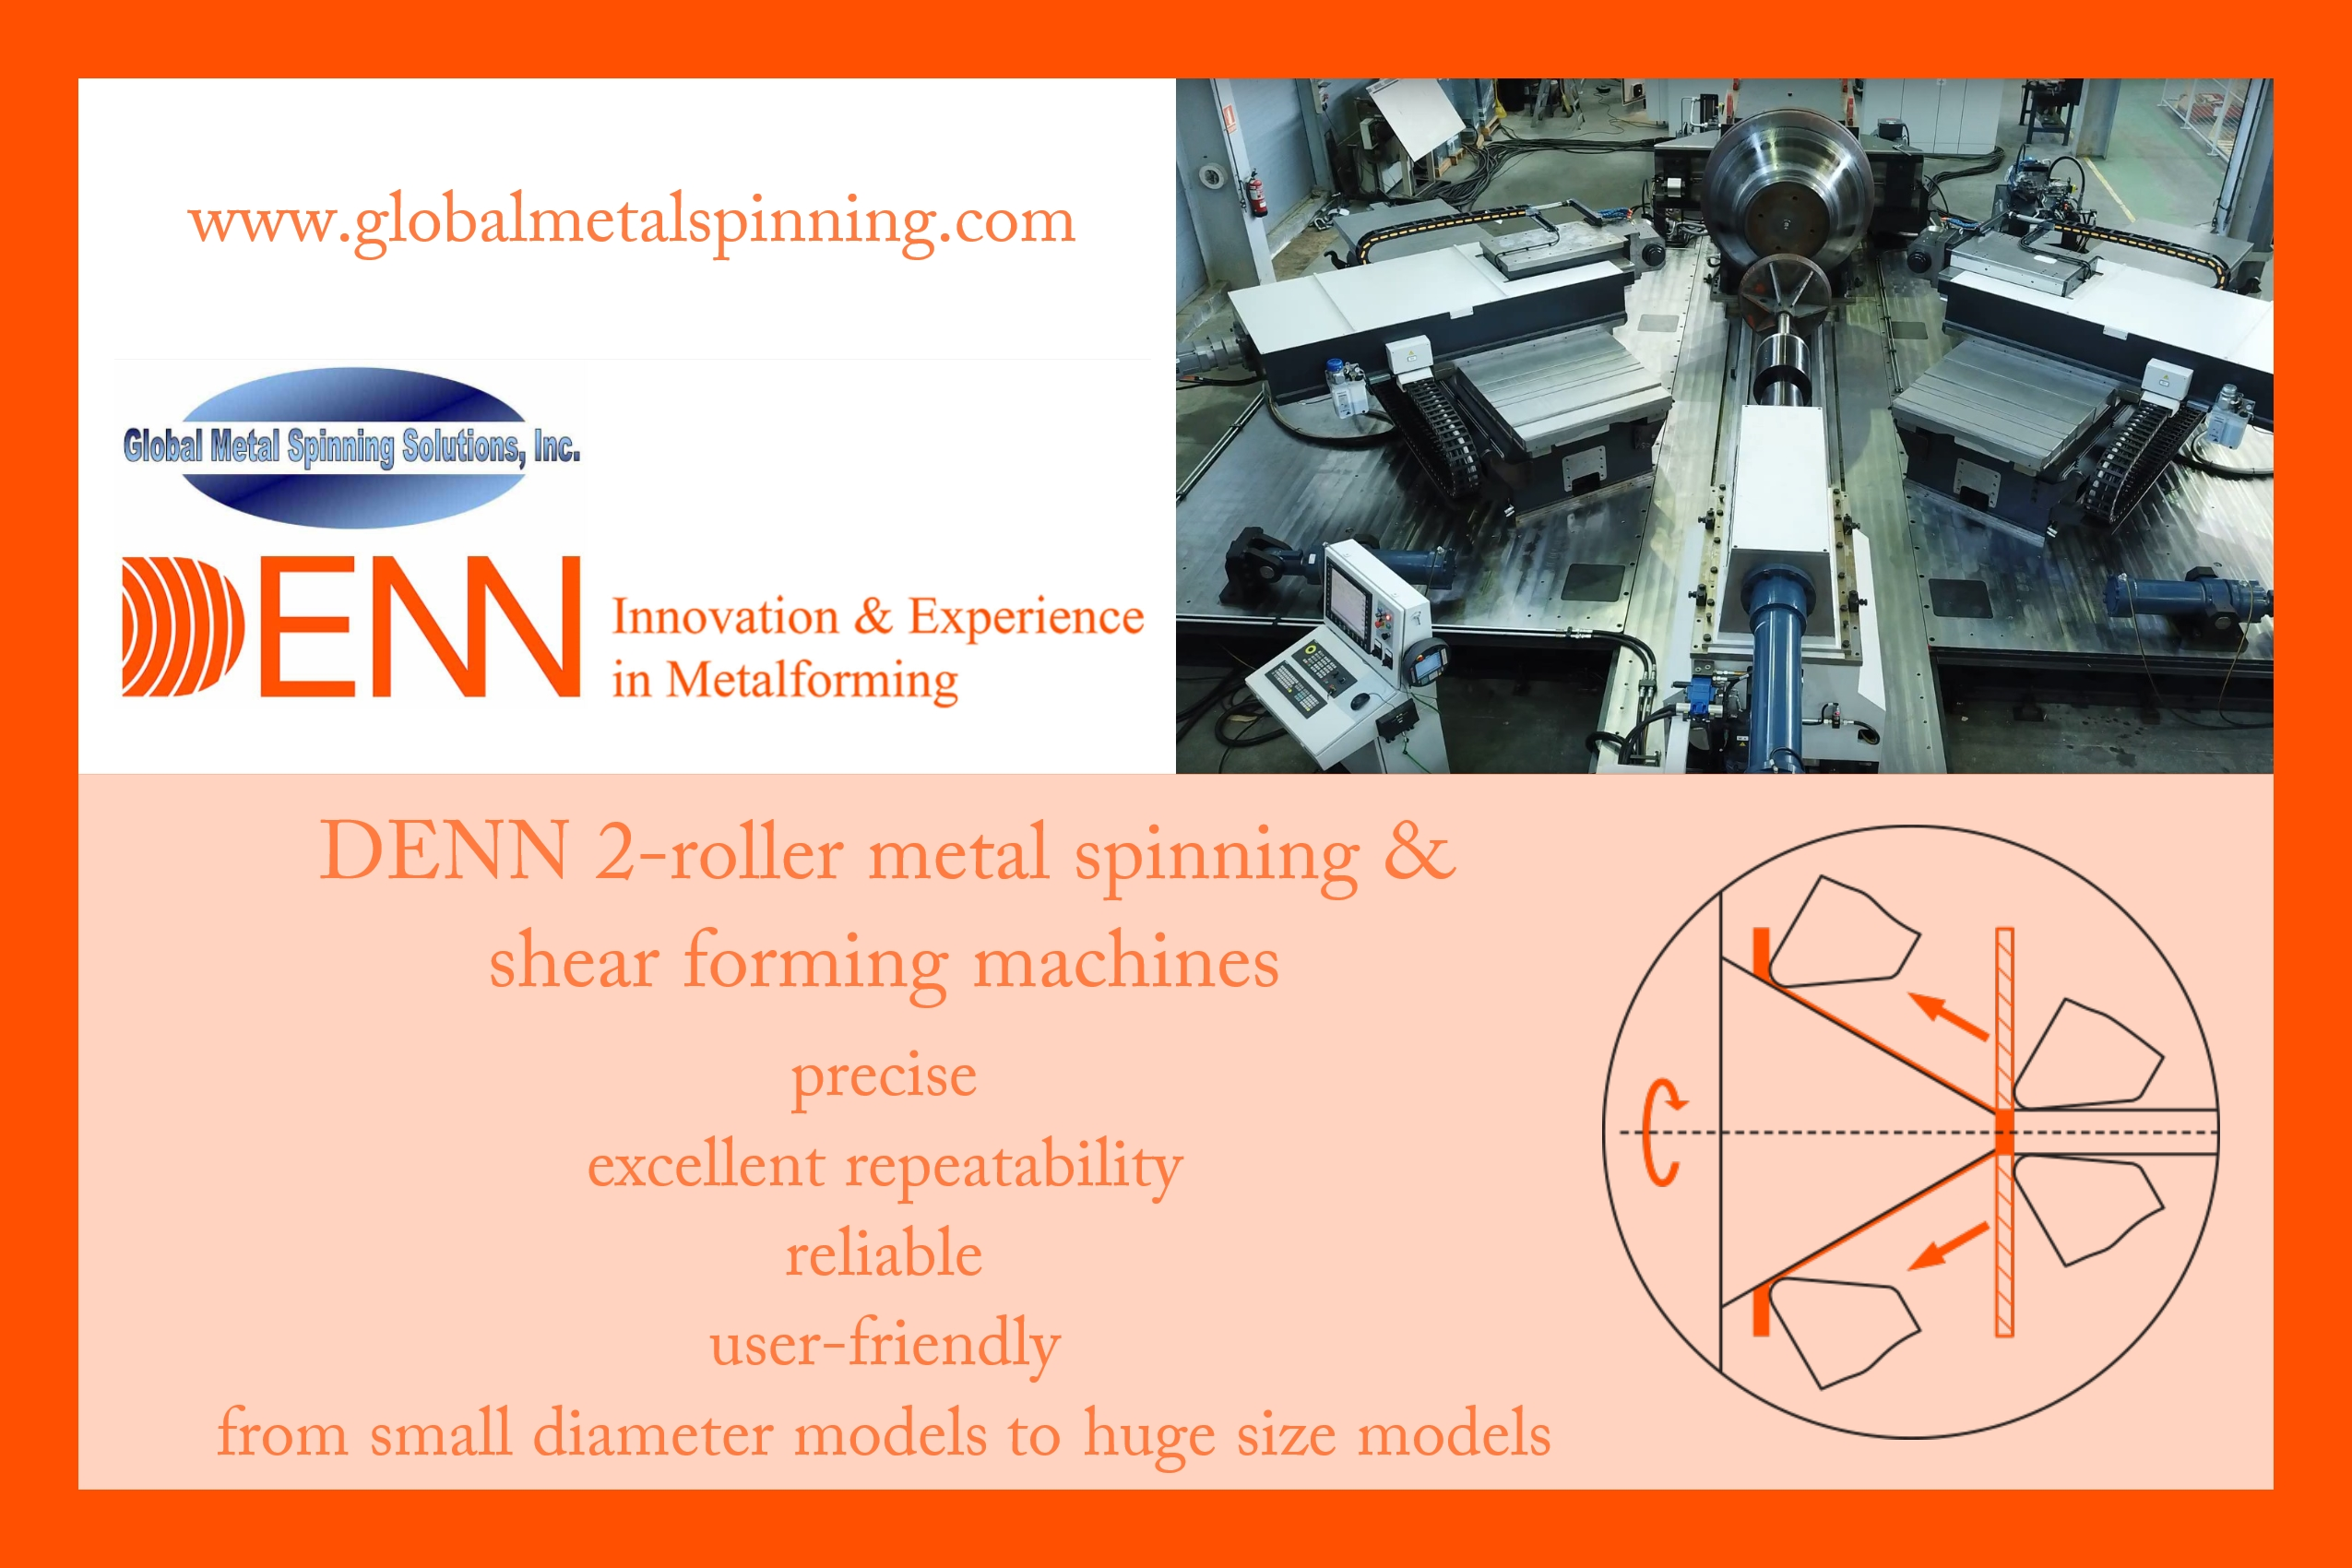 DENN 2-roller metal spinning and shear forming machine